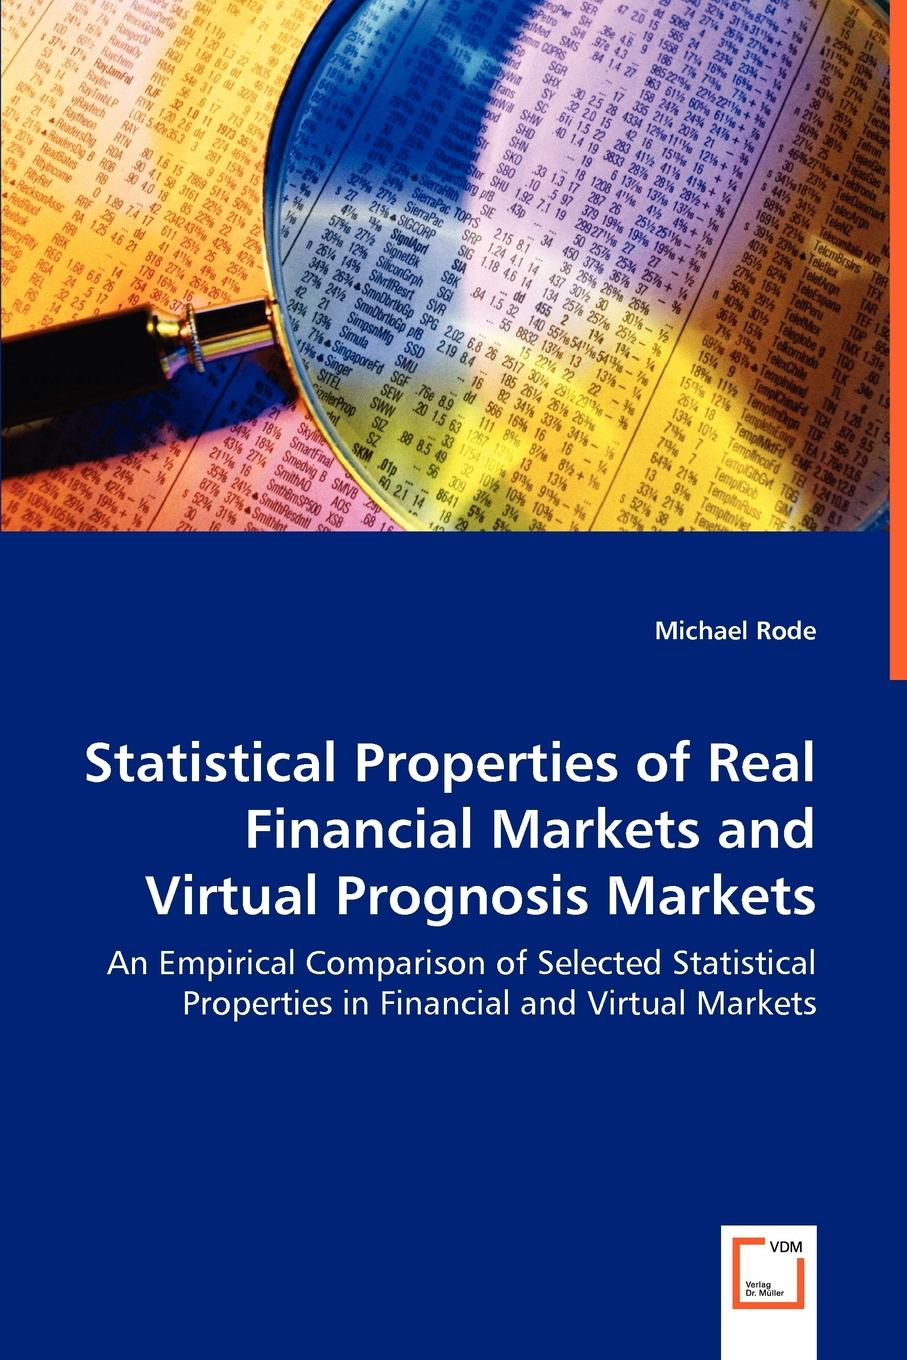 Michael Rode Statistical Properties of Real Financial Markets and Virtual Prognosis Markets